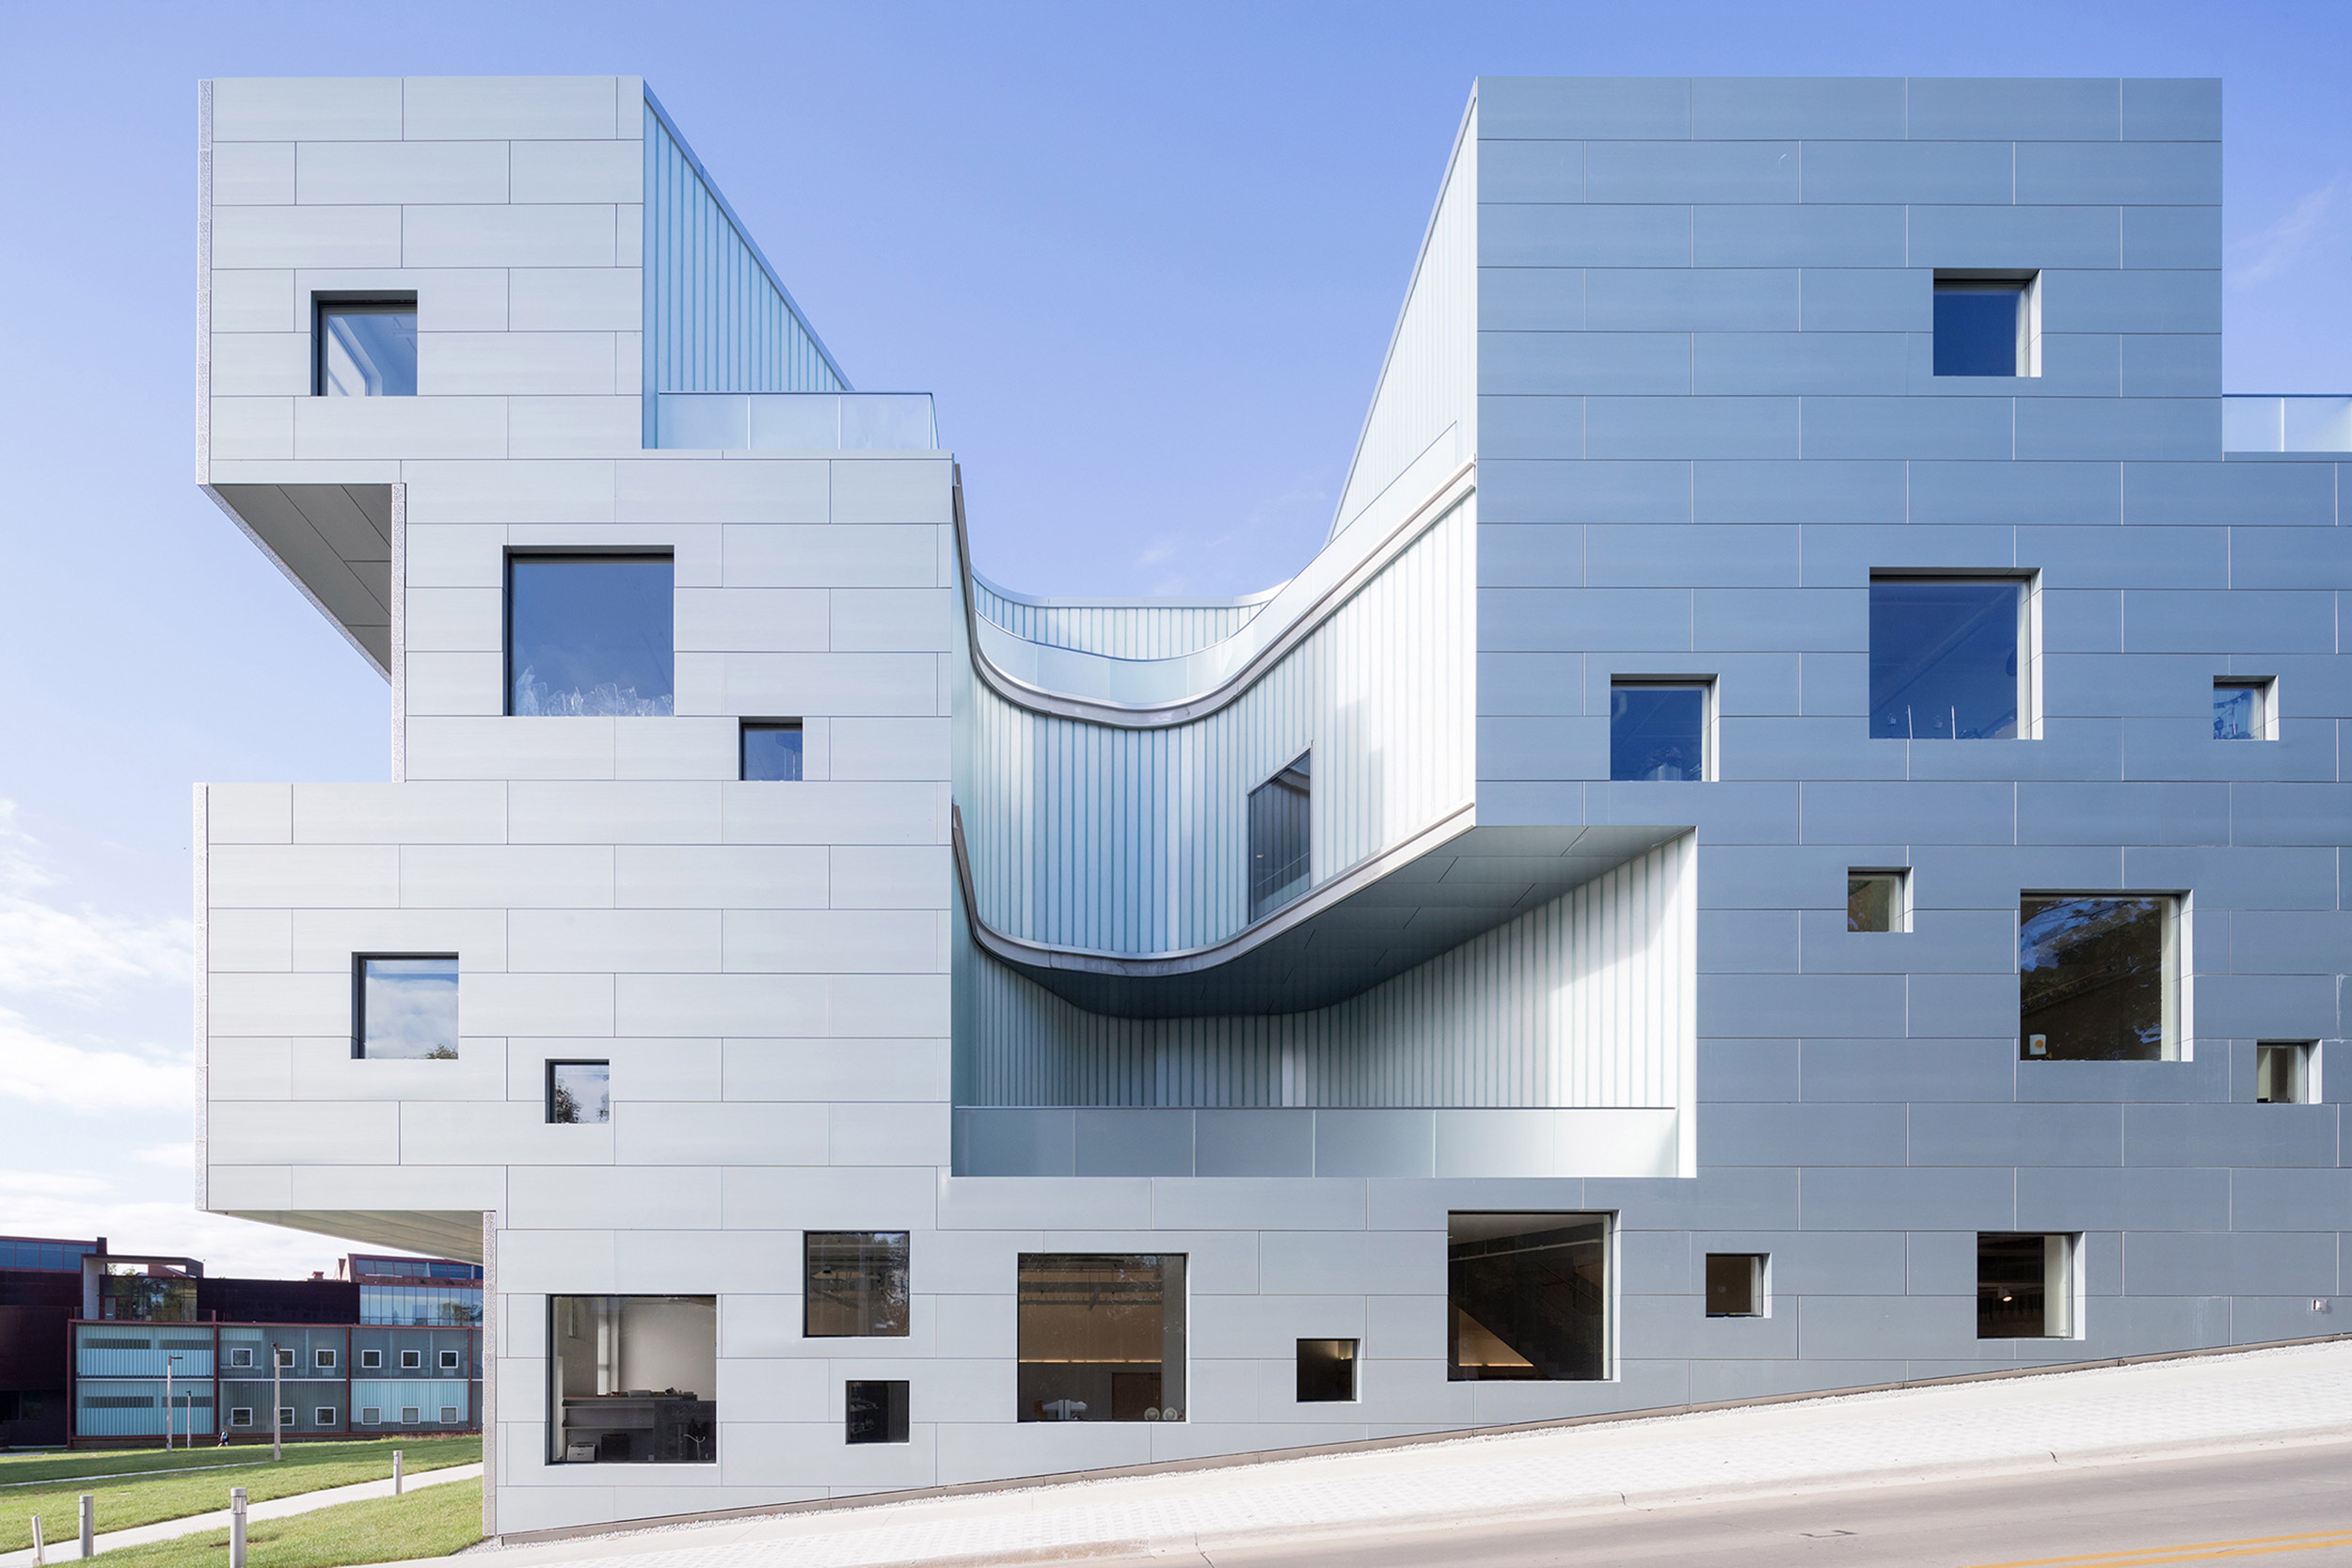 Project: University of Iowa Visual Arts Building. Architect: Steven Holl Architects. Associate Architect: BNIM Architects. Photo: Iwan Baan.